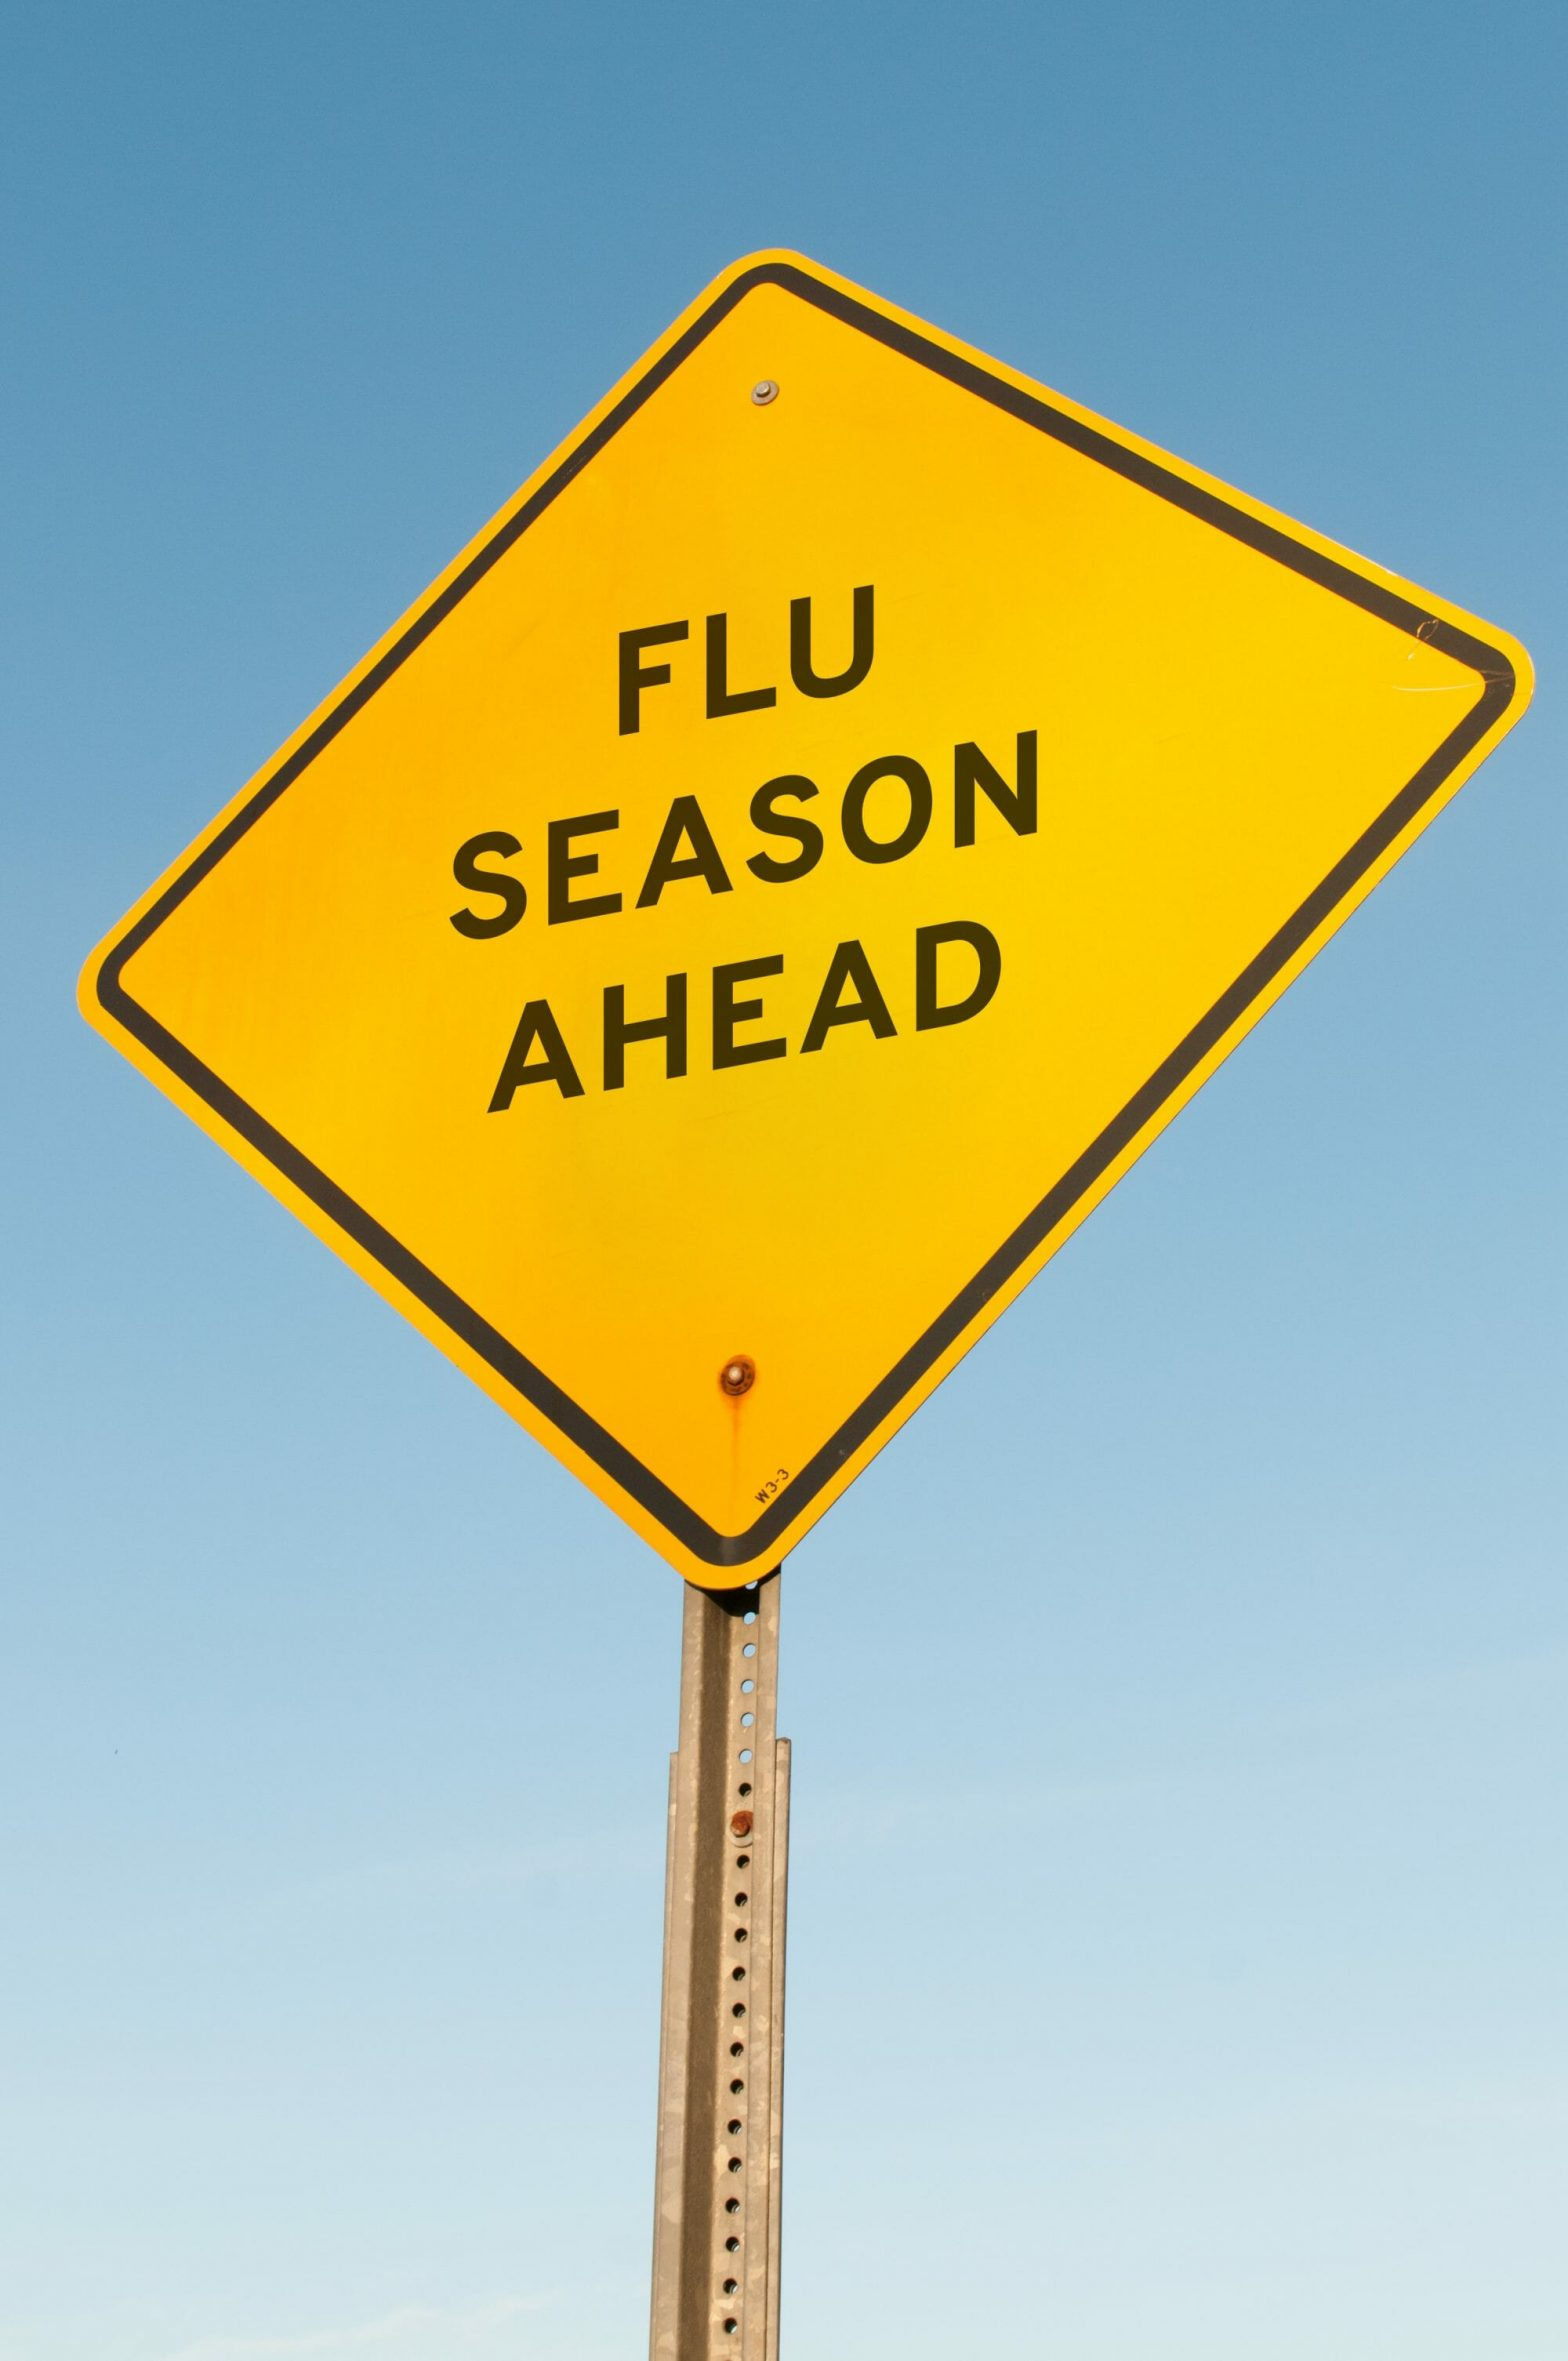 Flue Season Ahead sign